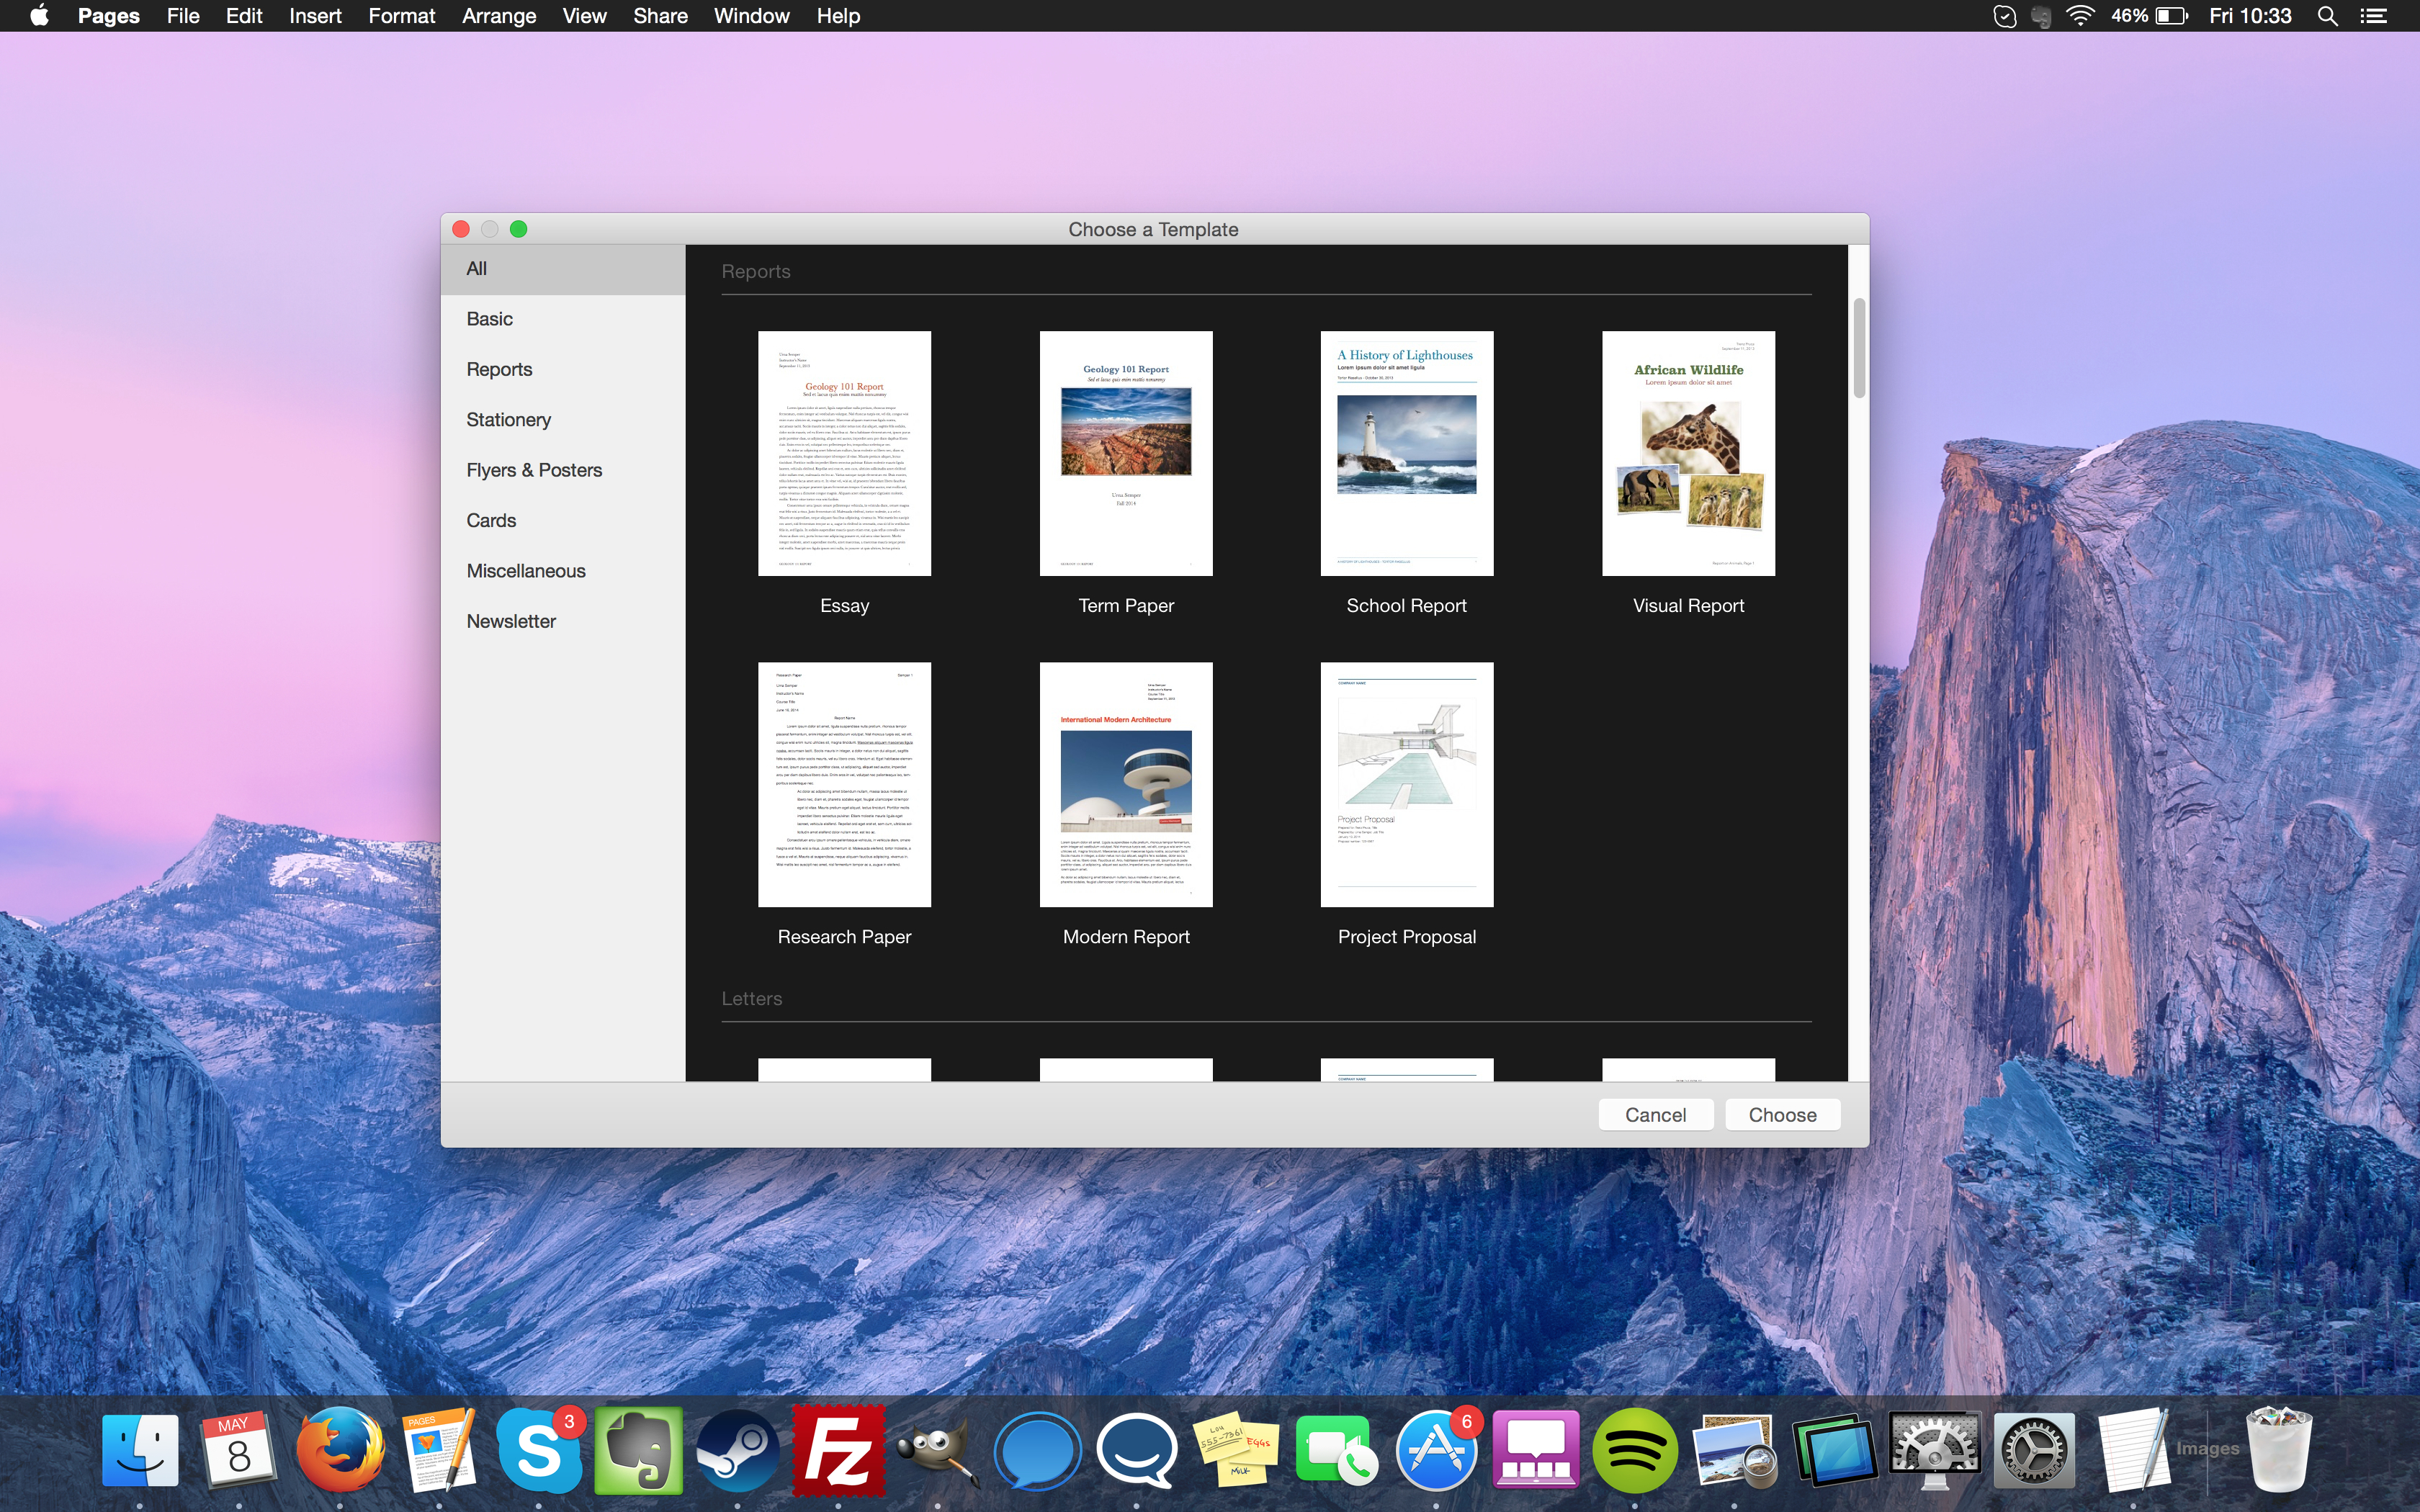 The new MacBook fits OS X Yosemite like a glove